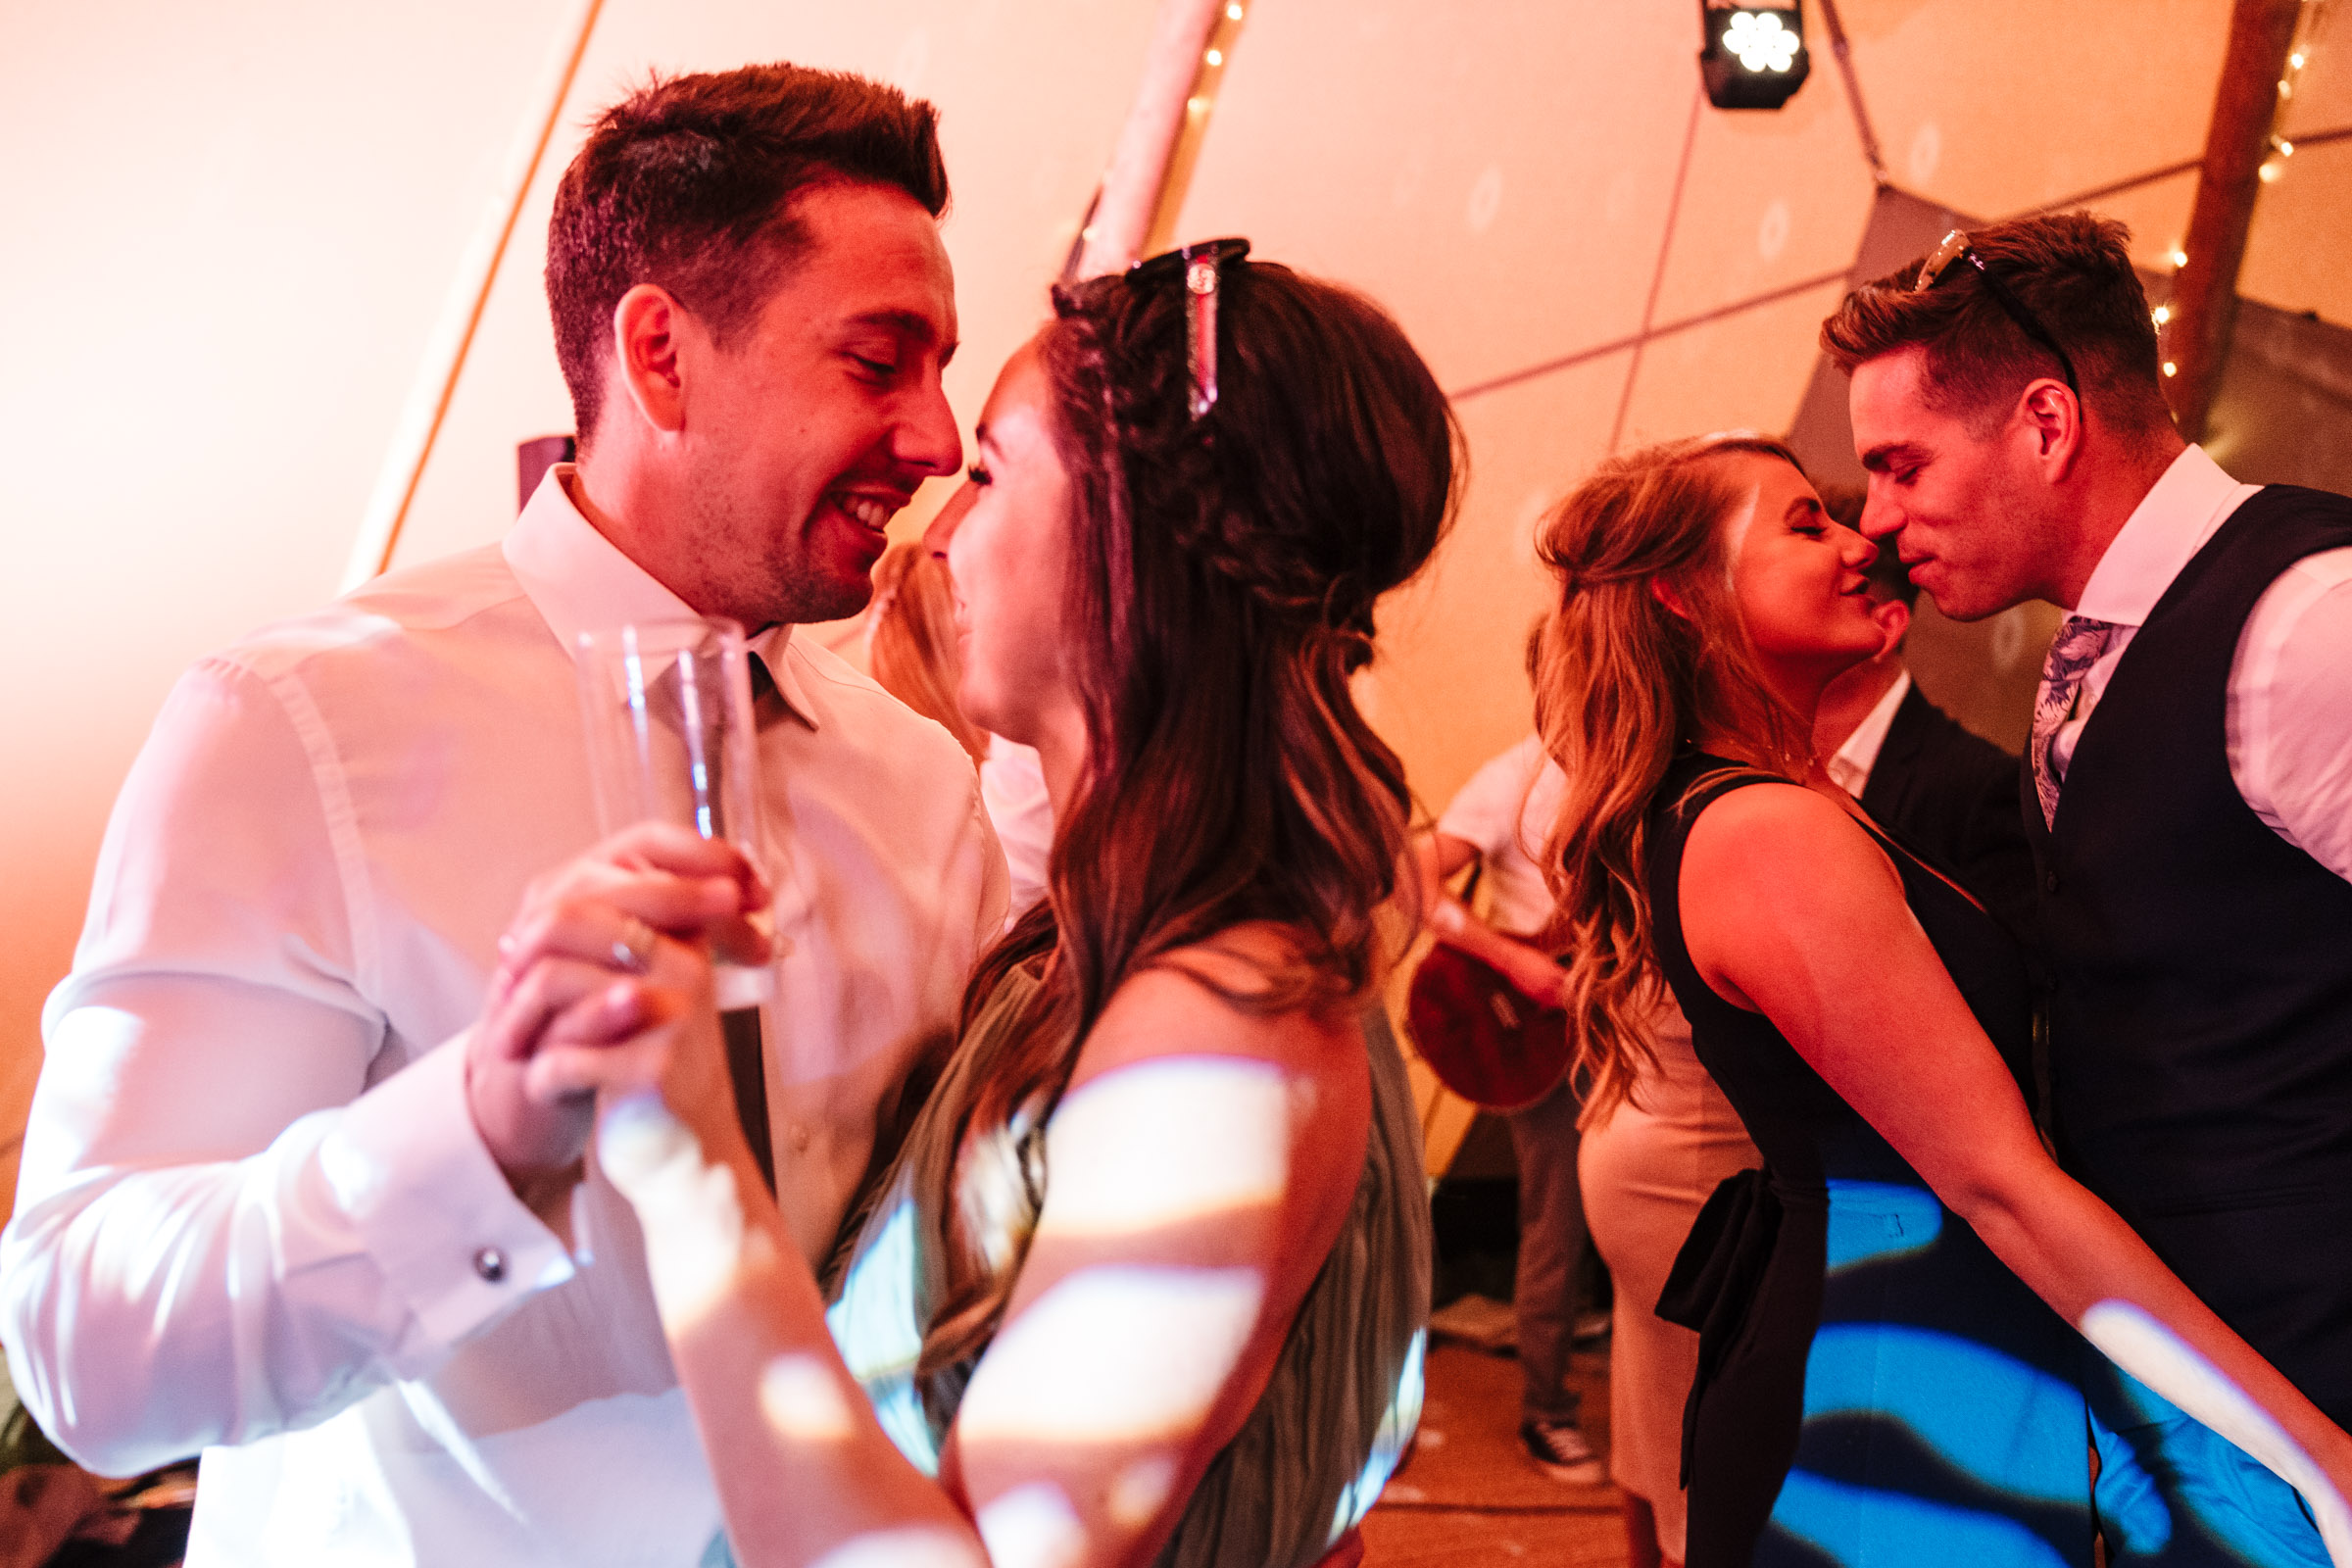 wedding guests dancing n dancefloor at tipi wedding